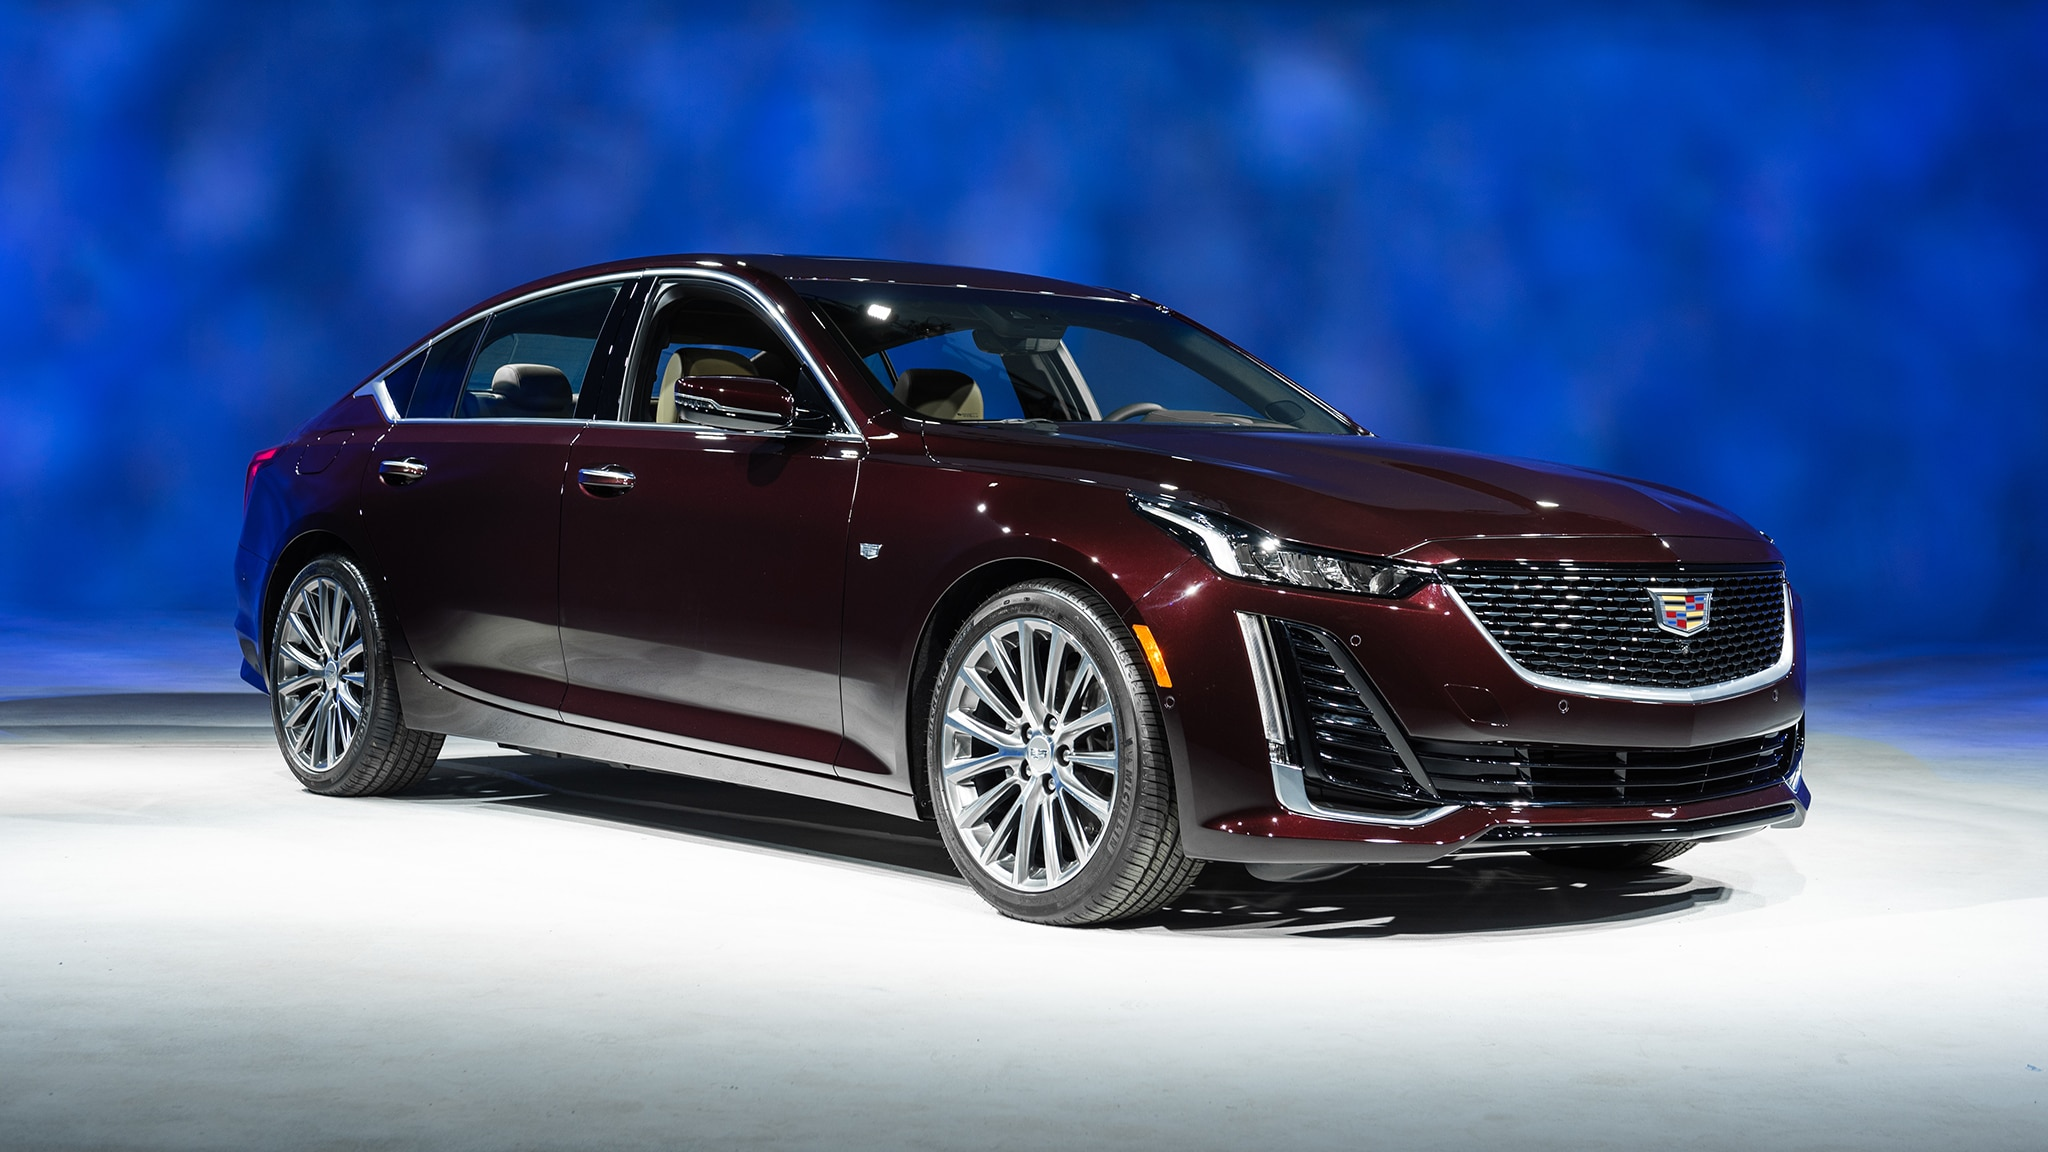 2020 Cadillac CT5: Stuff Cadillac Told Us About Its New ...